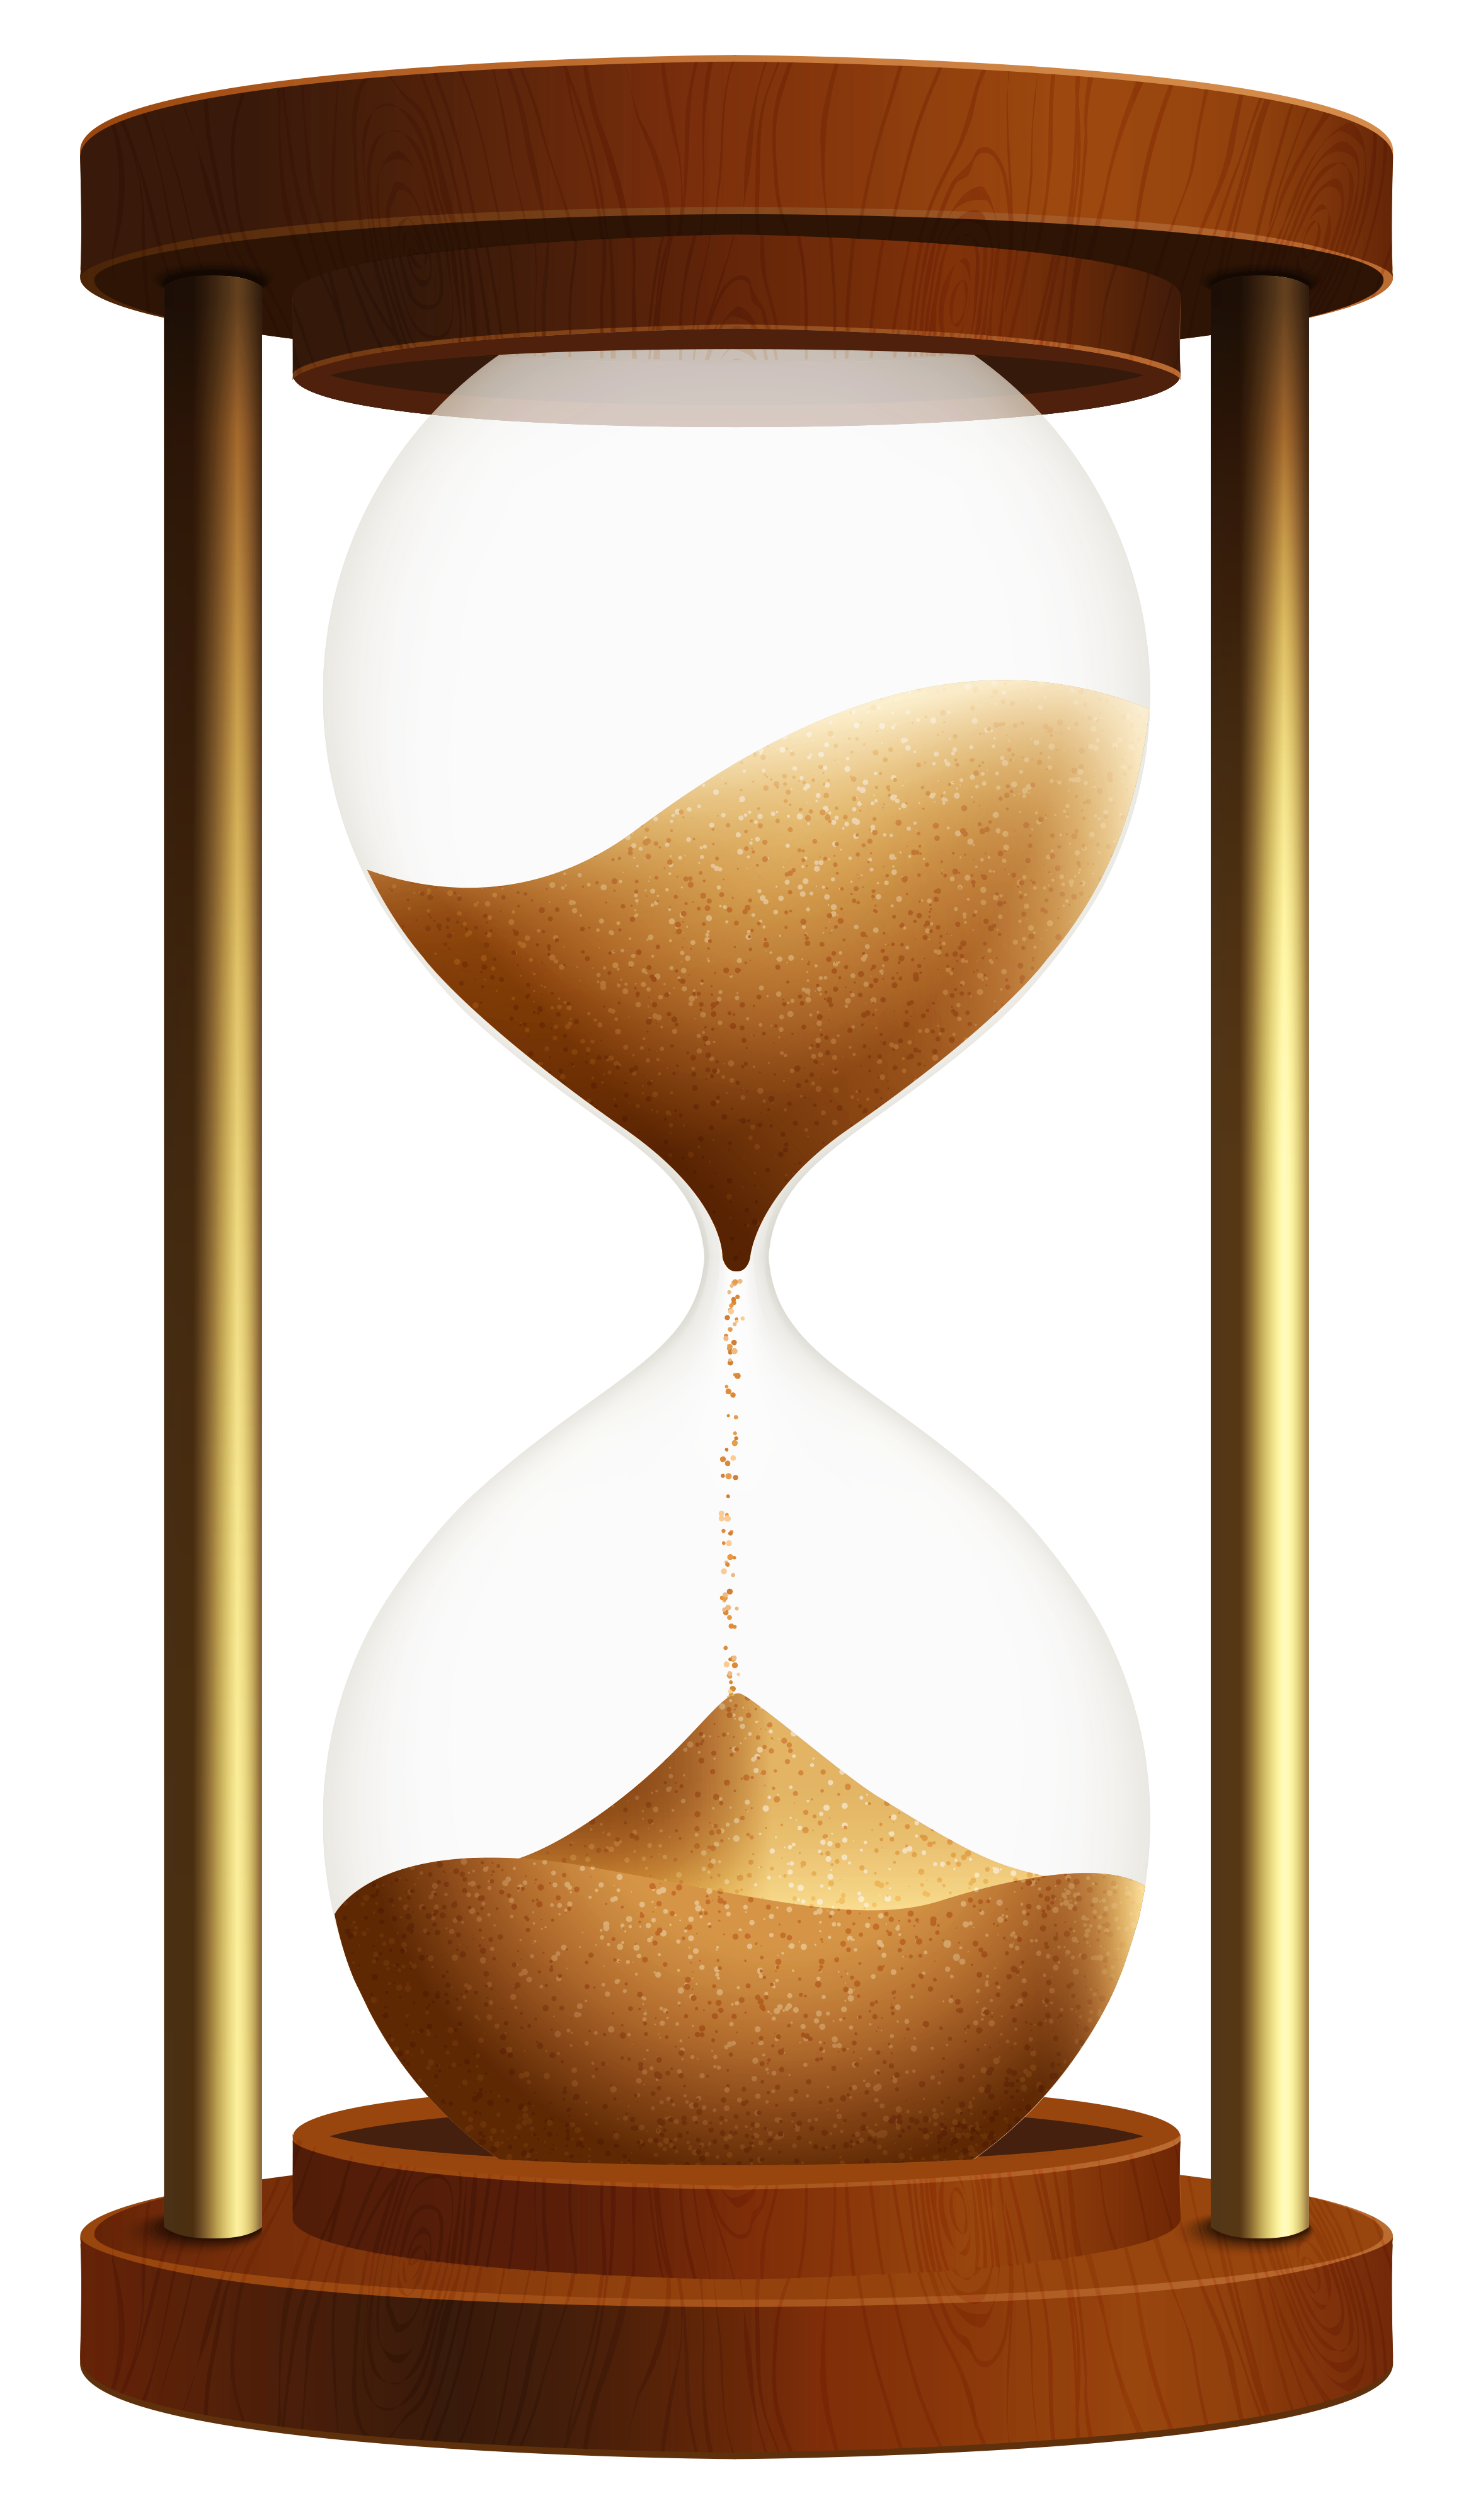 Sand clock png best. Hourglass clipart egg timer